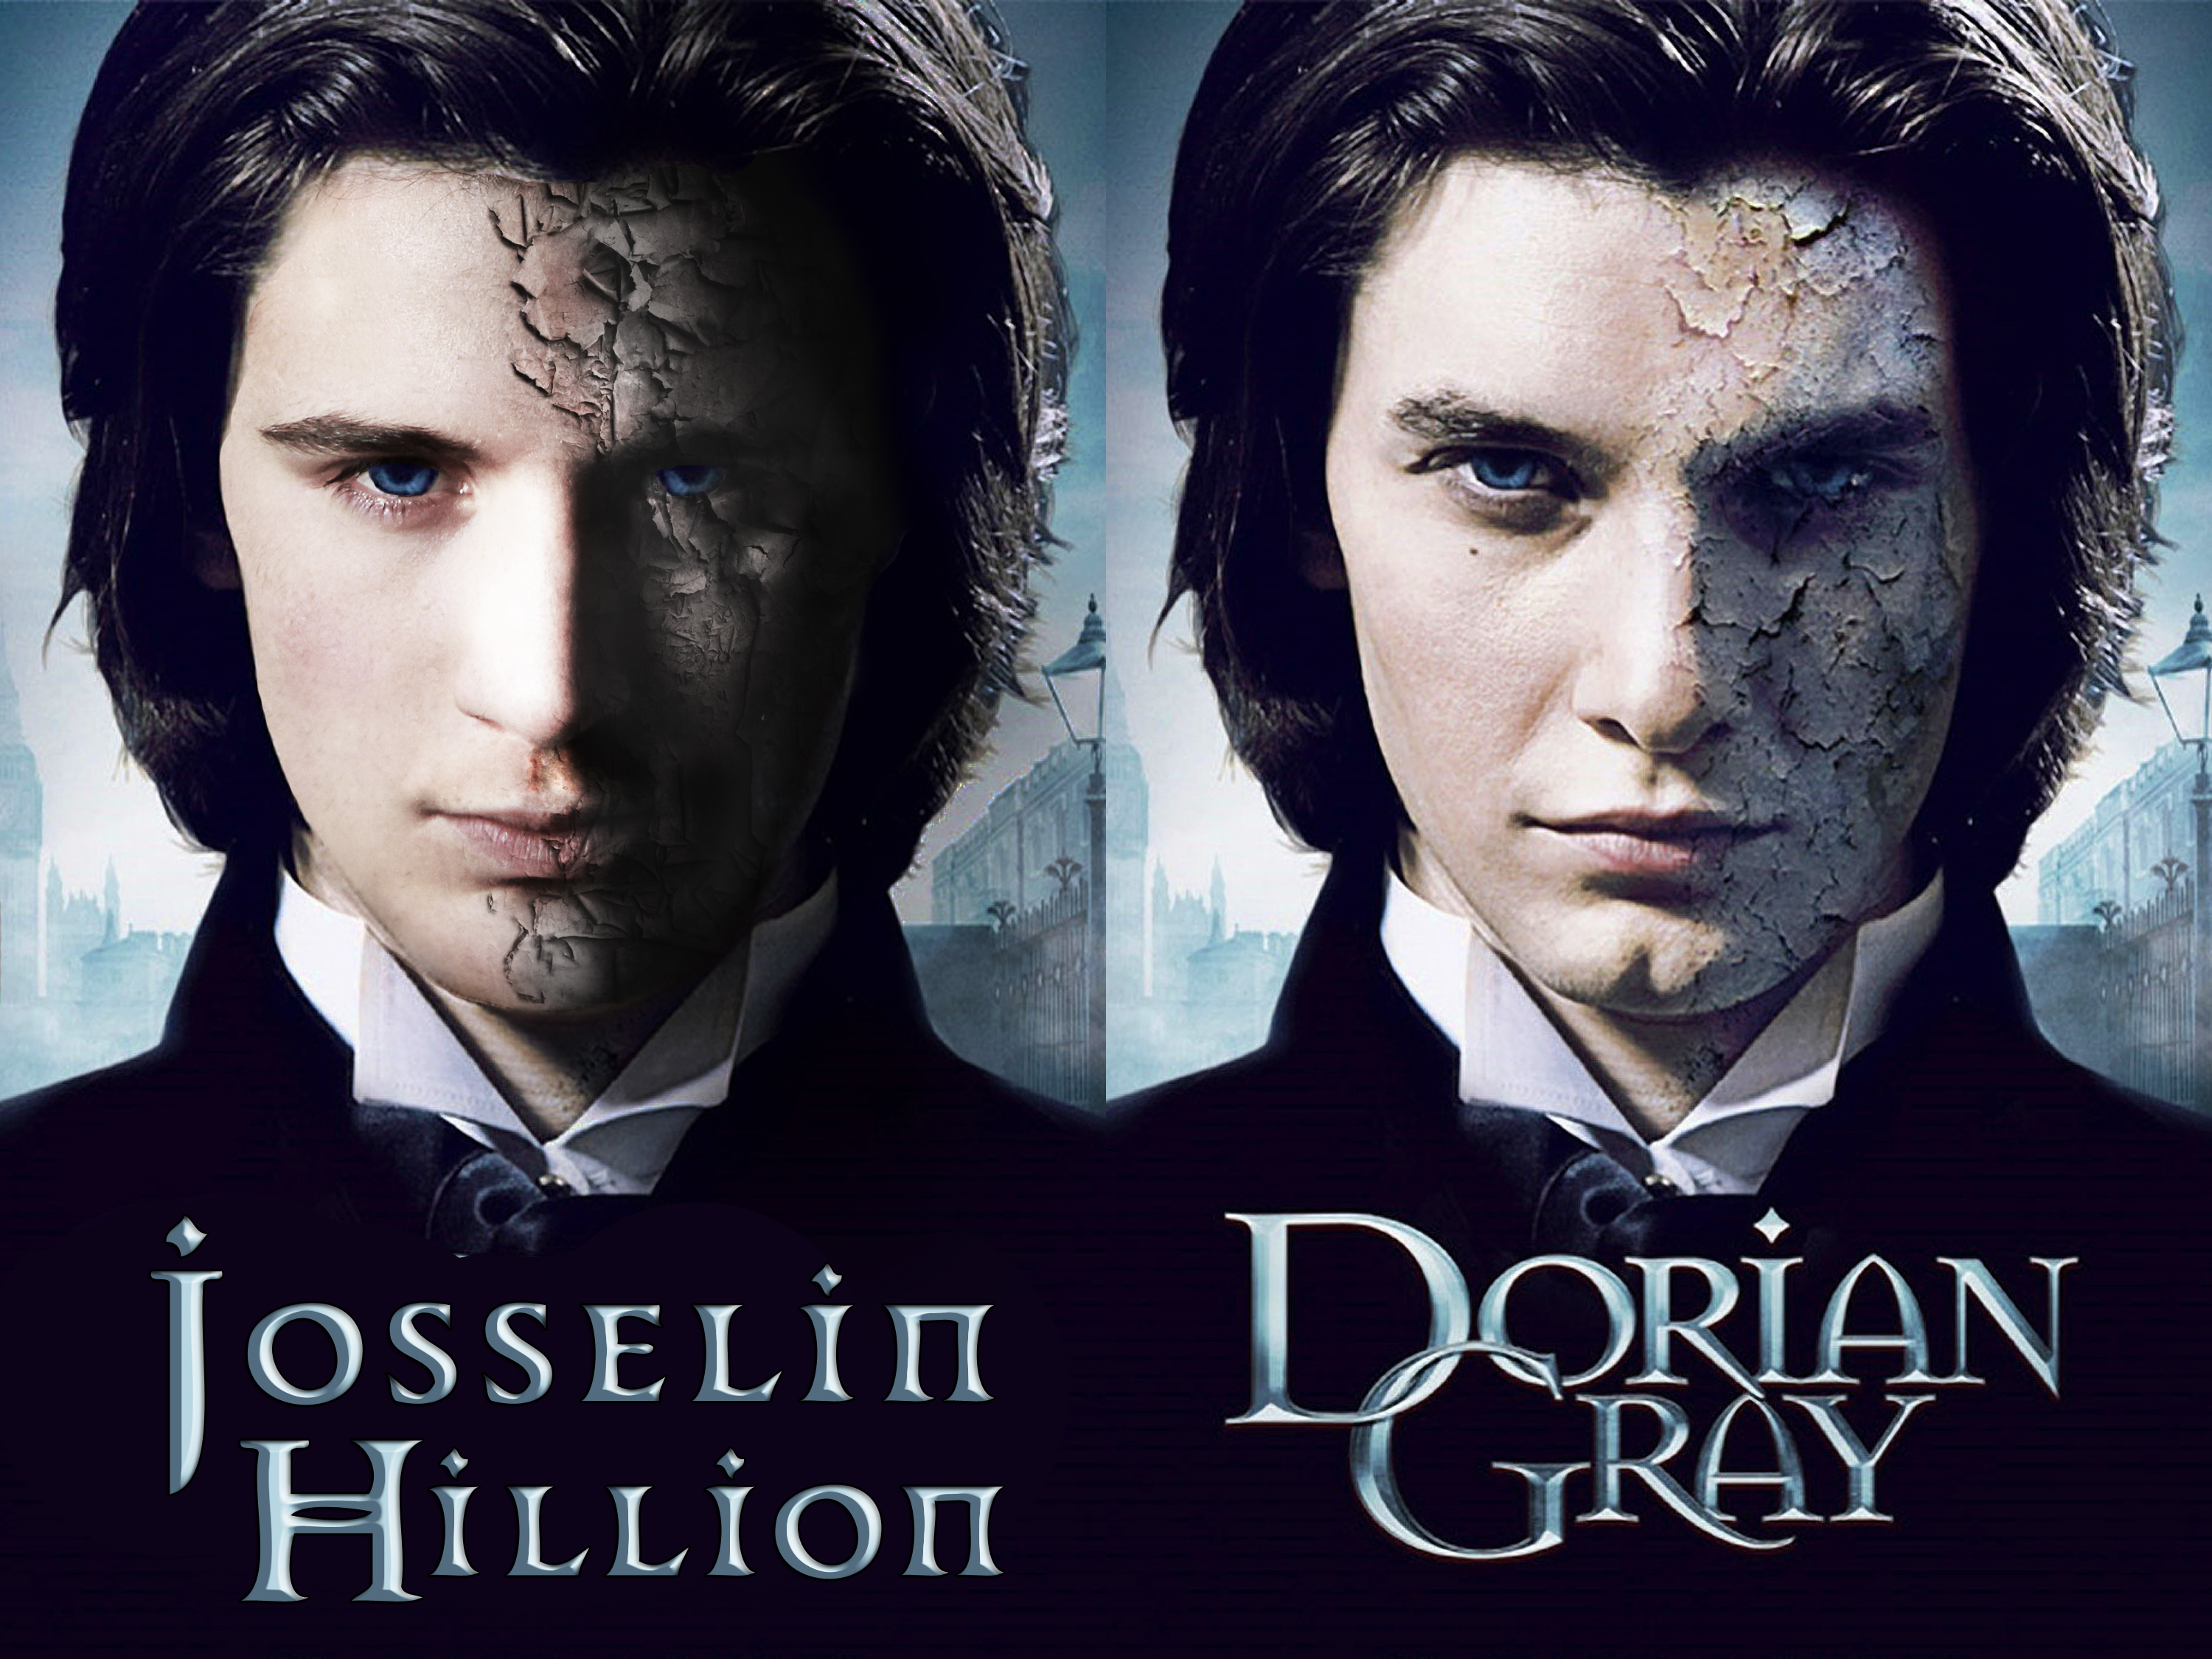 Dorian Gray - Josselin Hillion